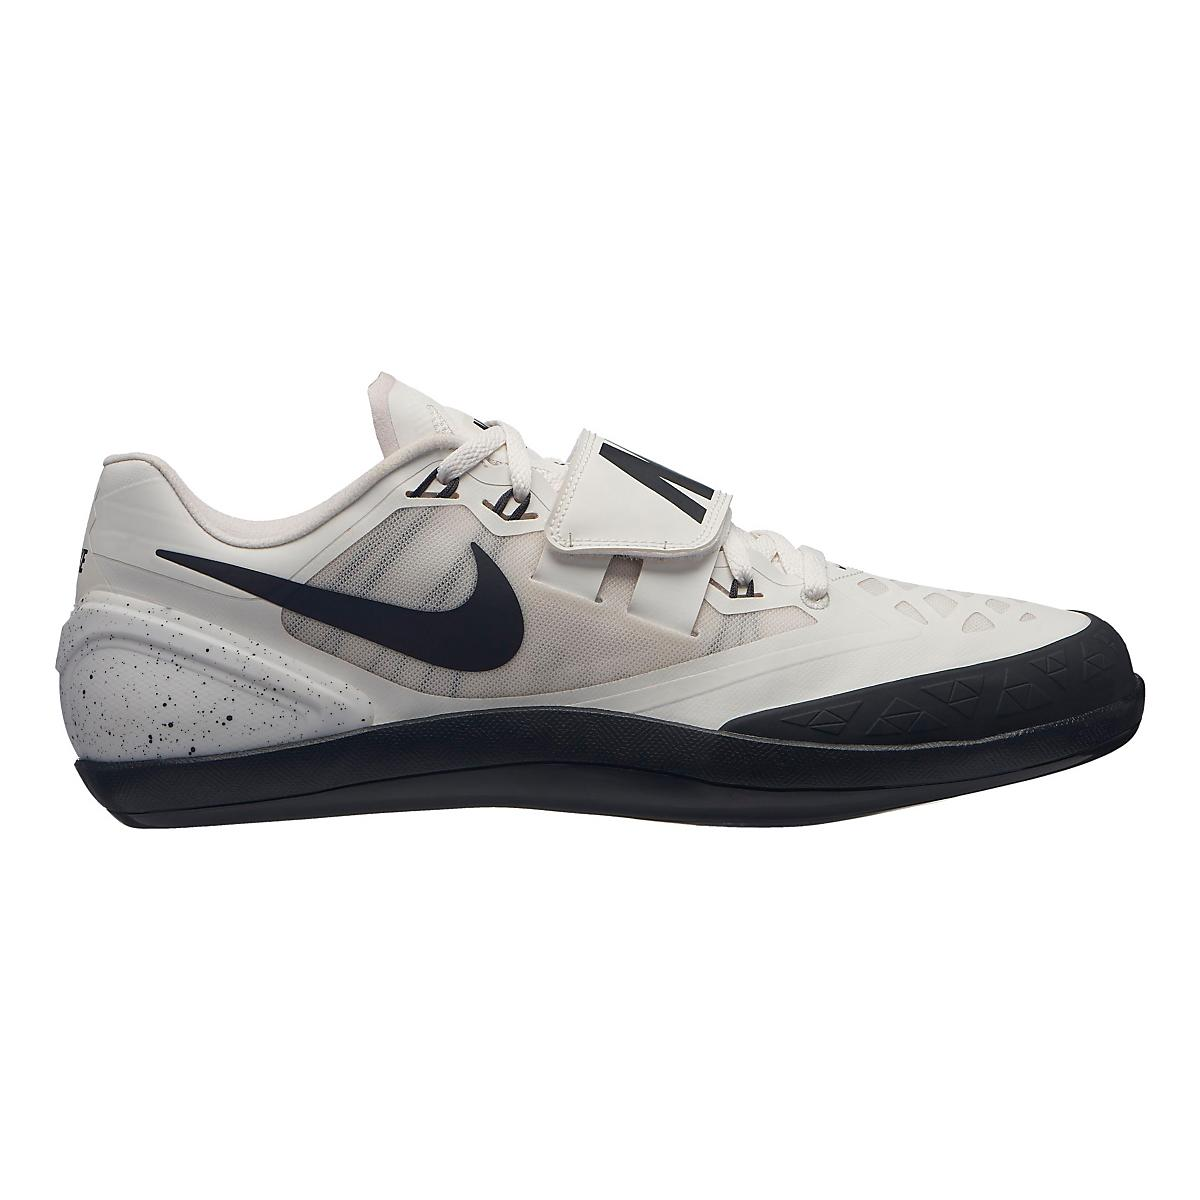 1cb4582bfee8f Mens Nike Zoom Rival SD 2 Track and Field Shoe at Road Runner Sports